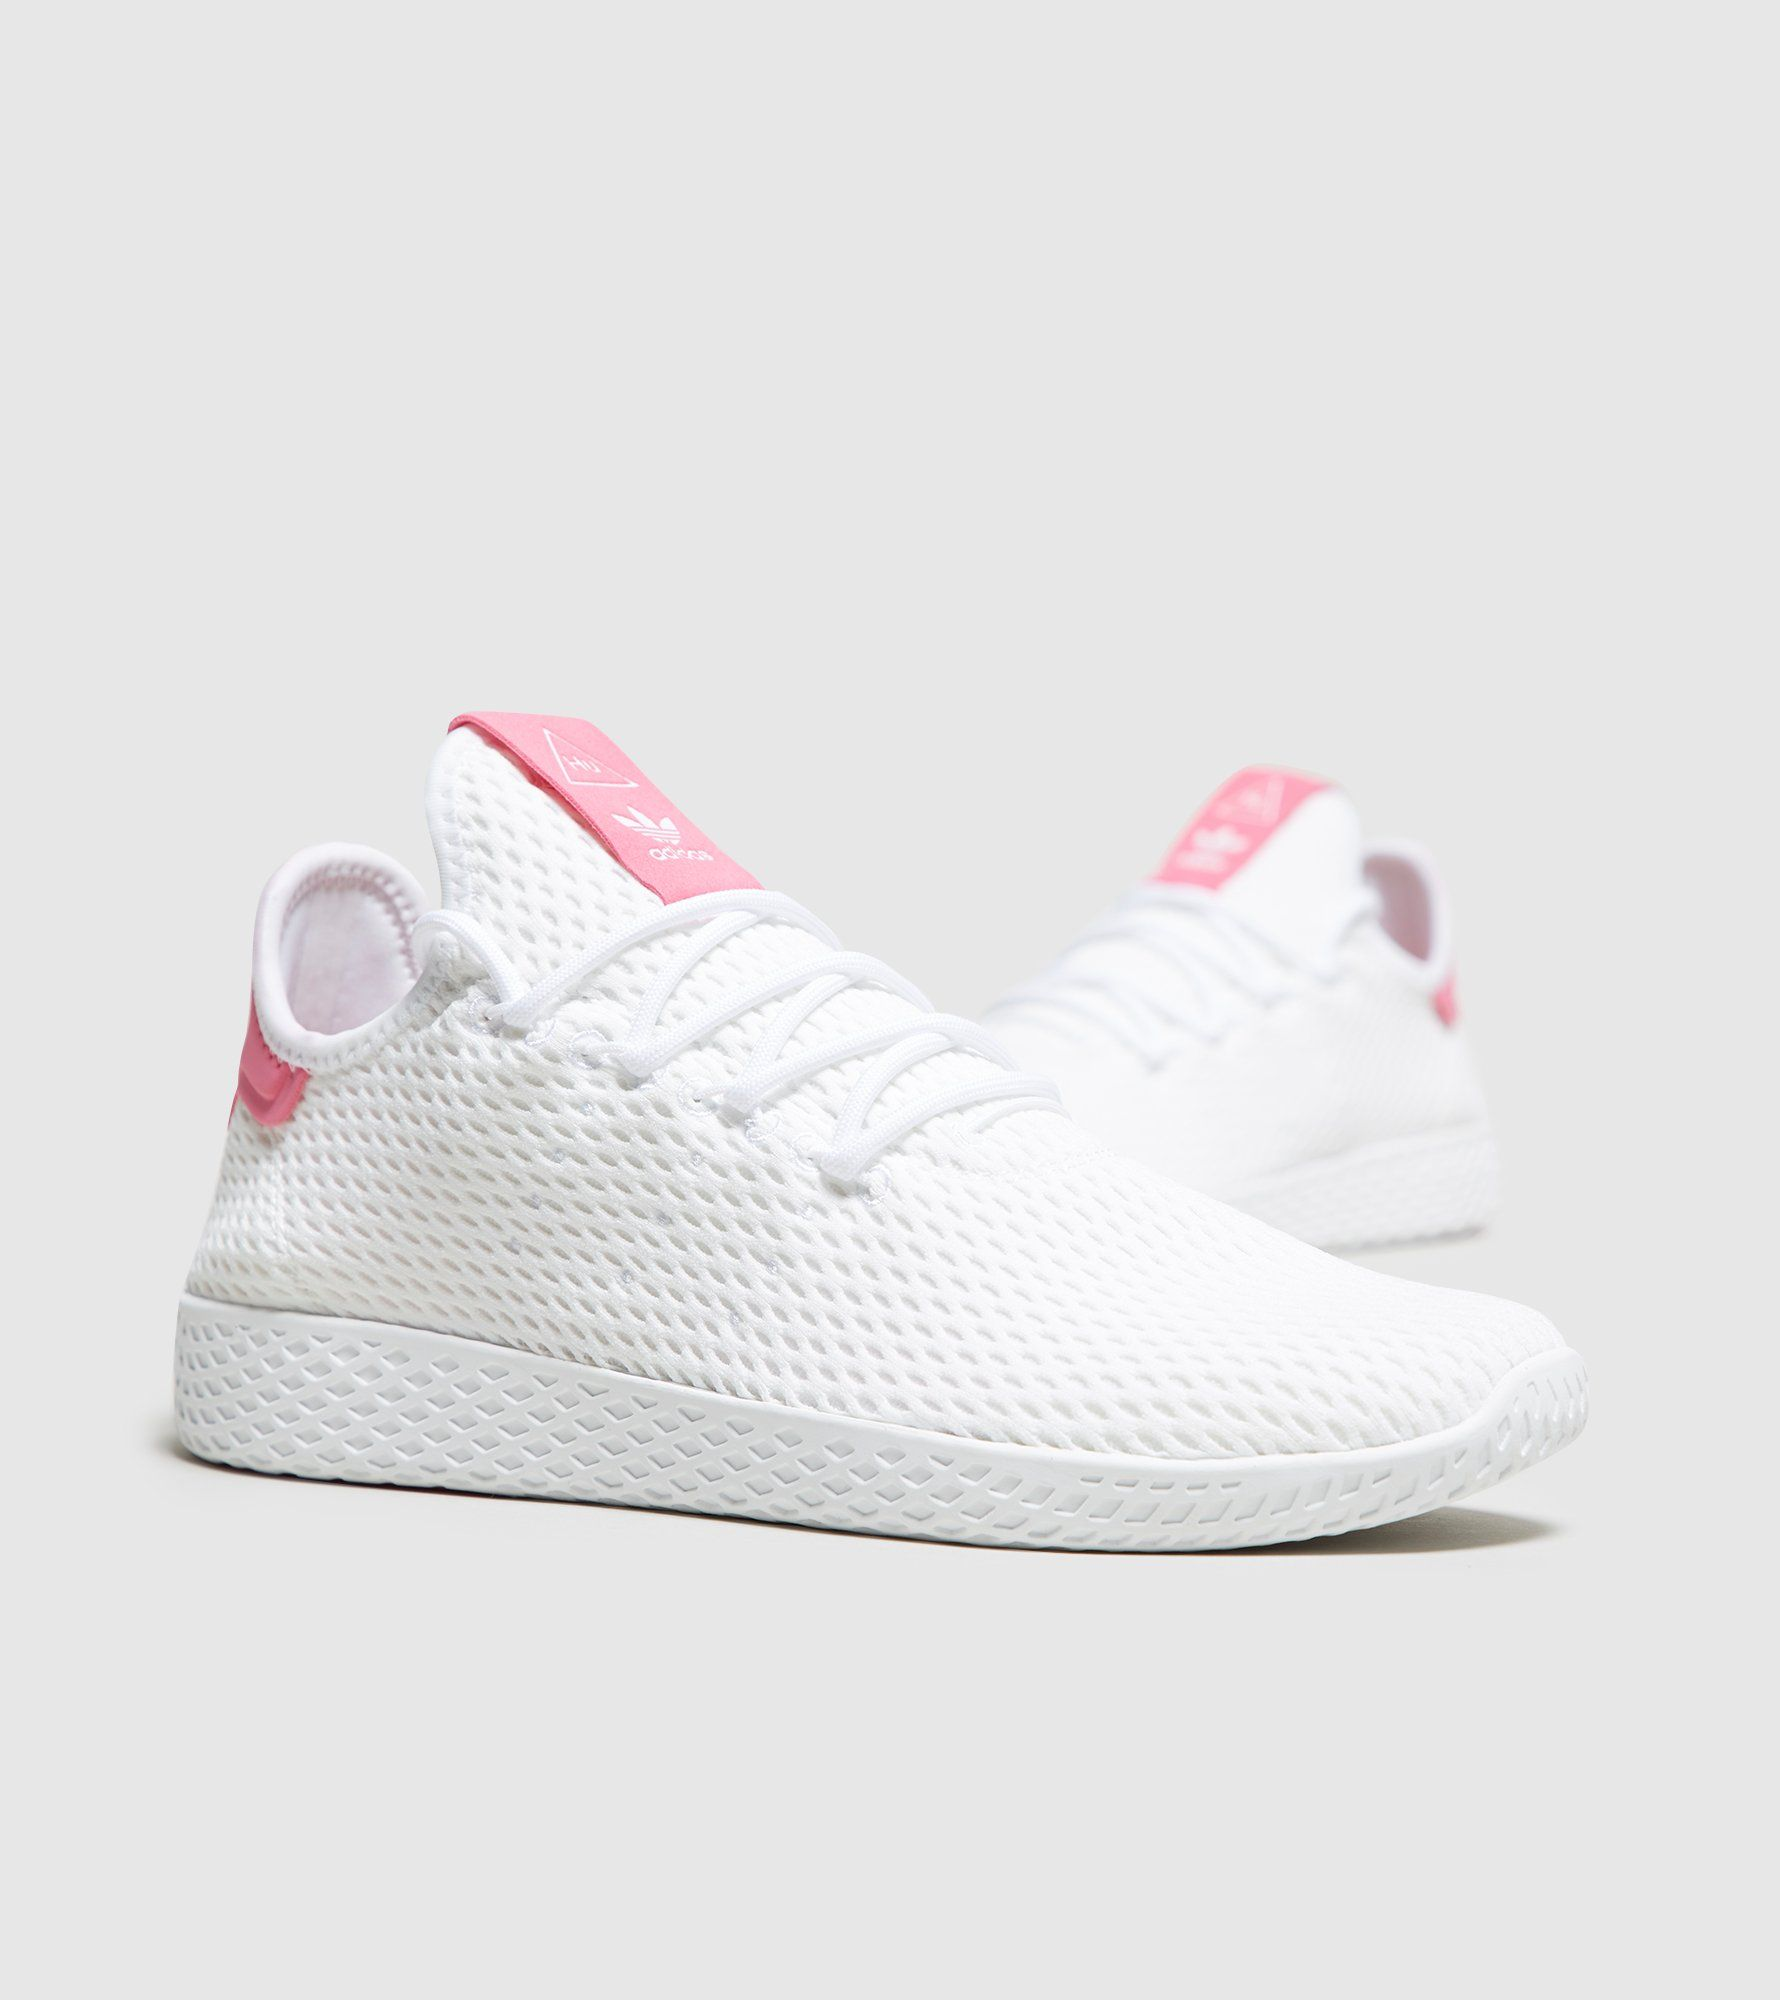 adidas Pharrell Williams Tennis Hu Sneakers In White And Pink